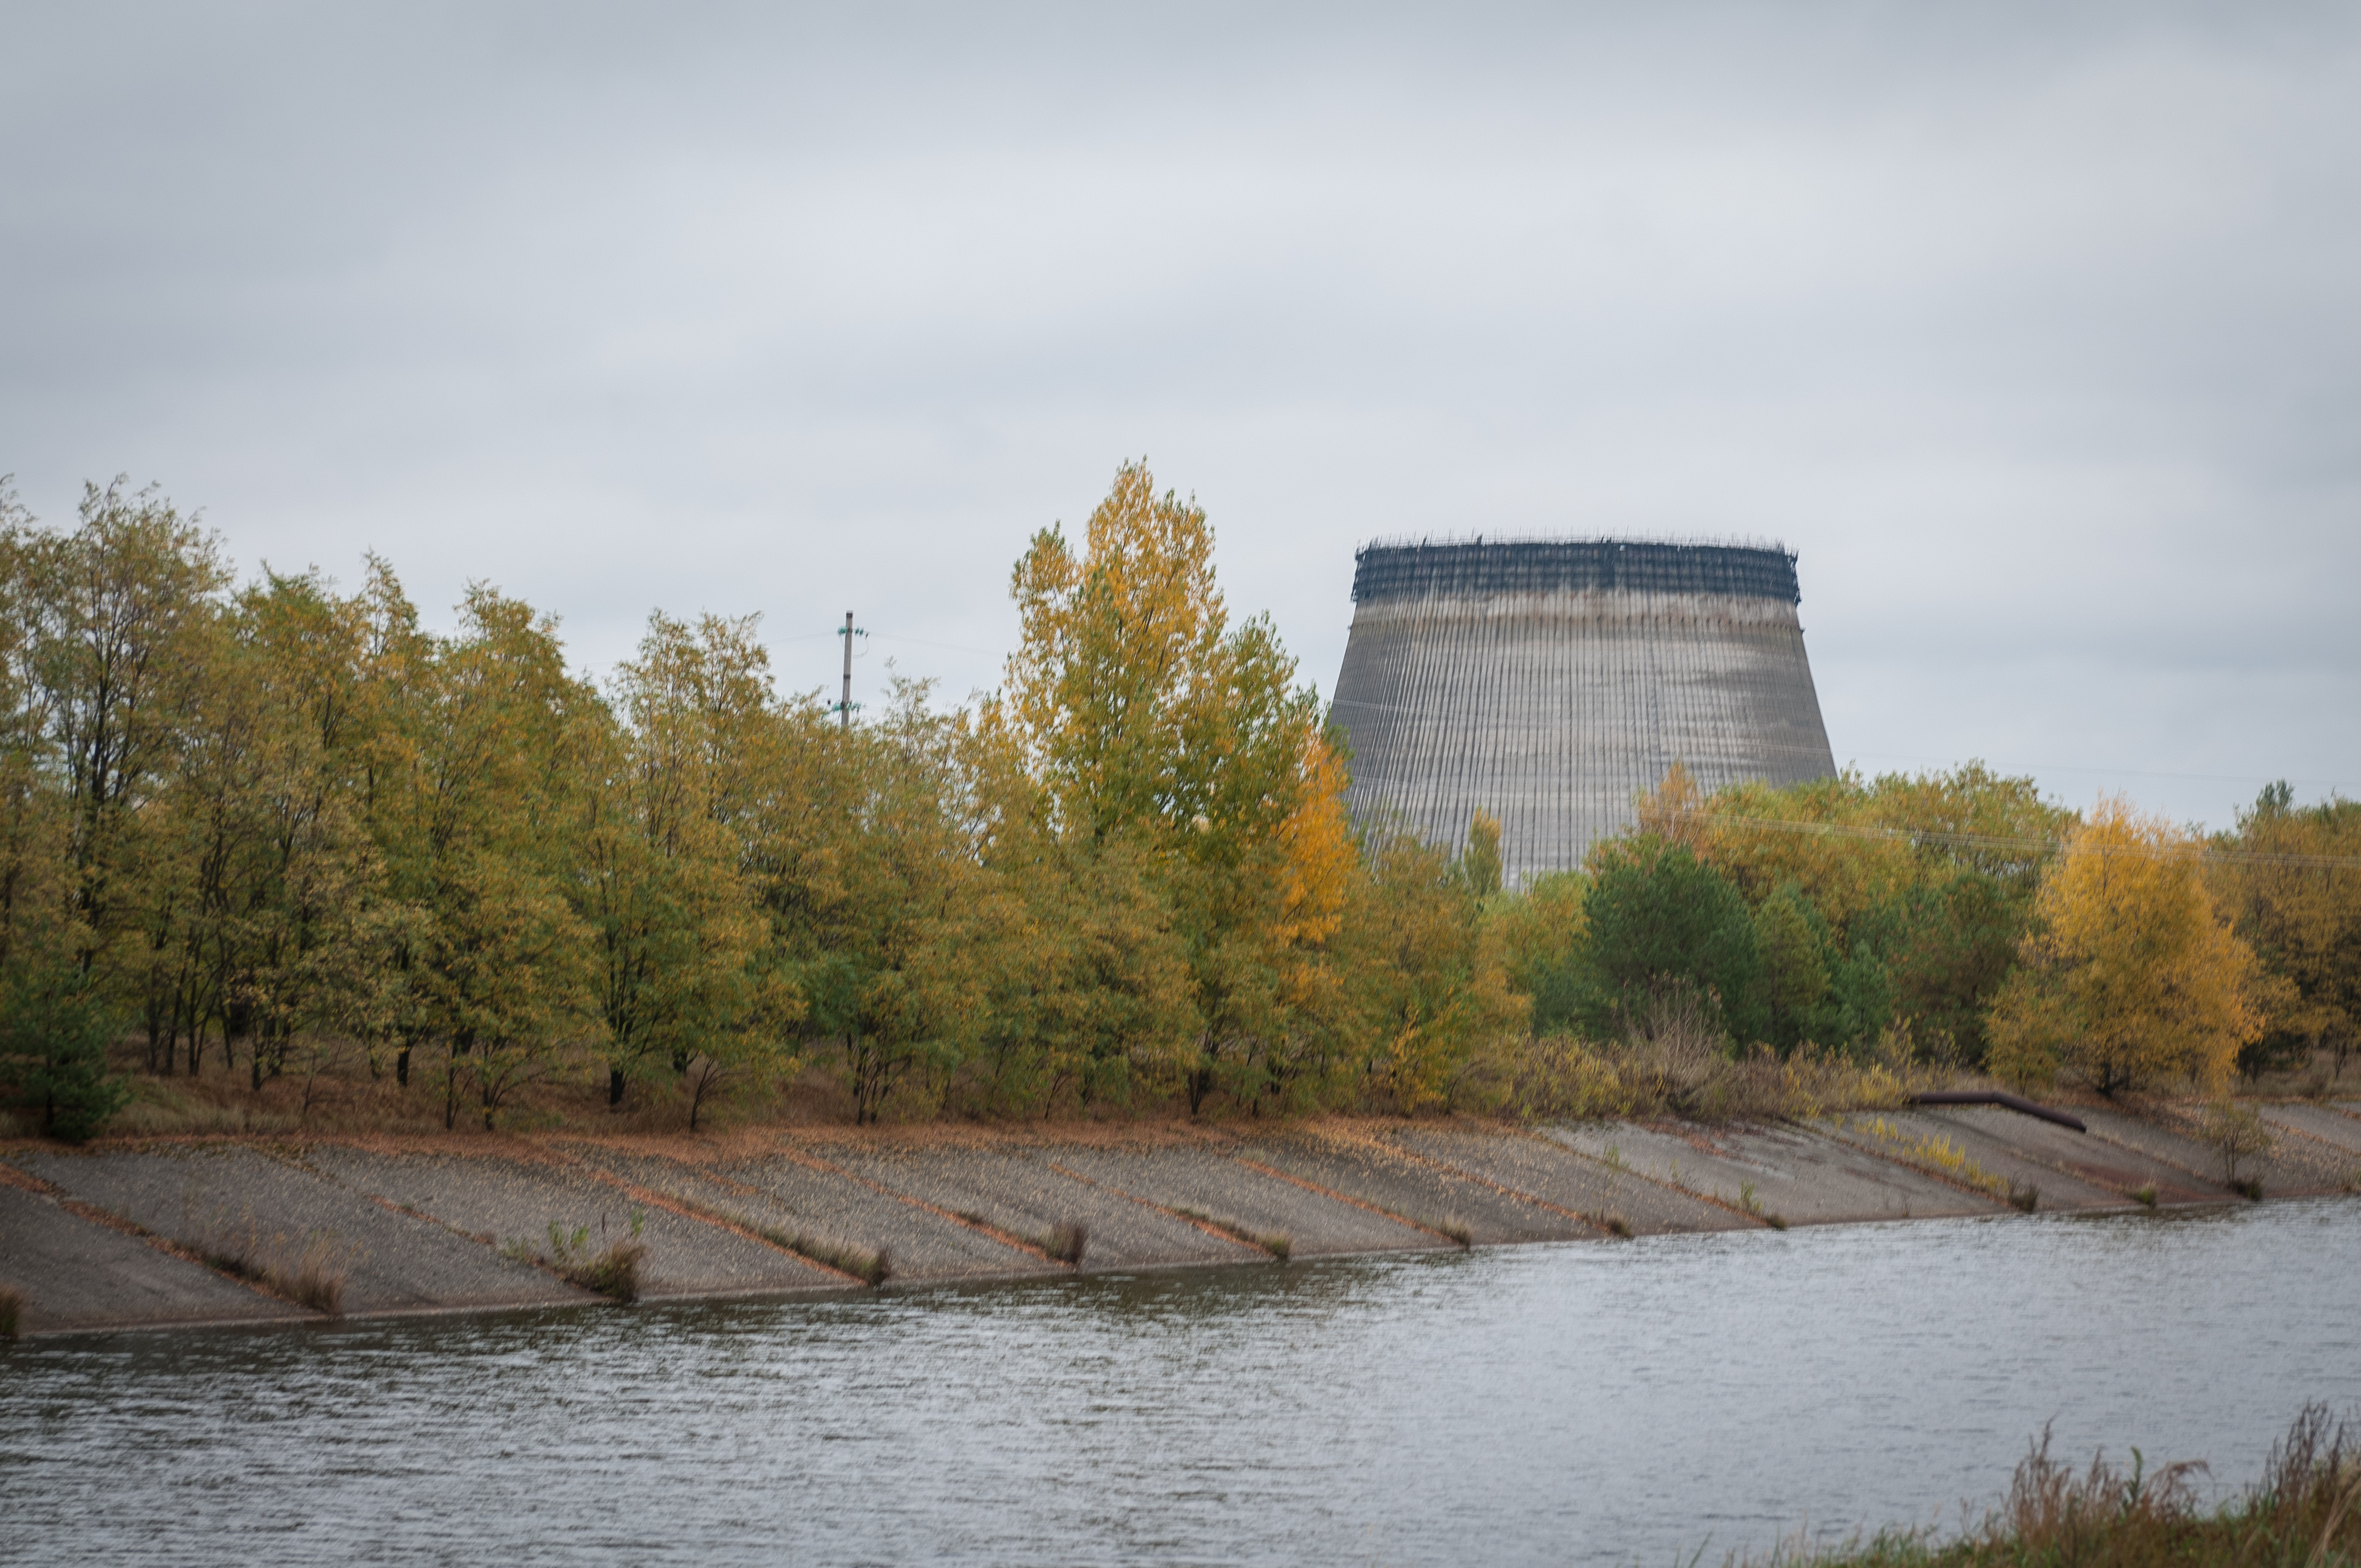 Chernobyl by Andrew Leatherbarrow - Exposure